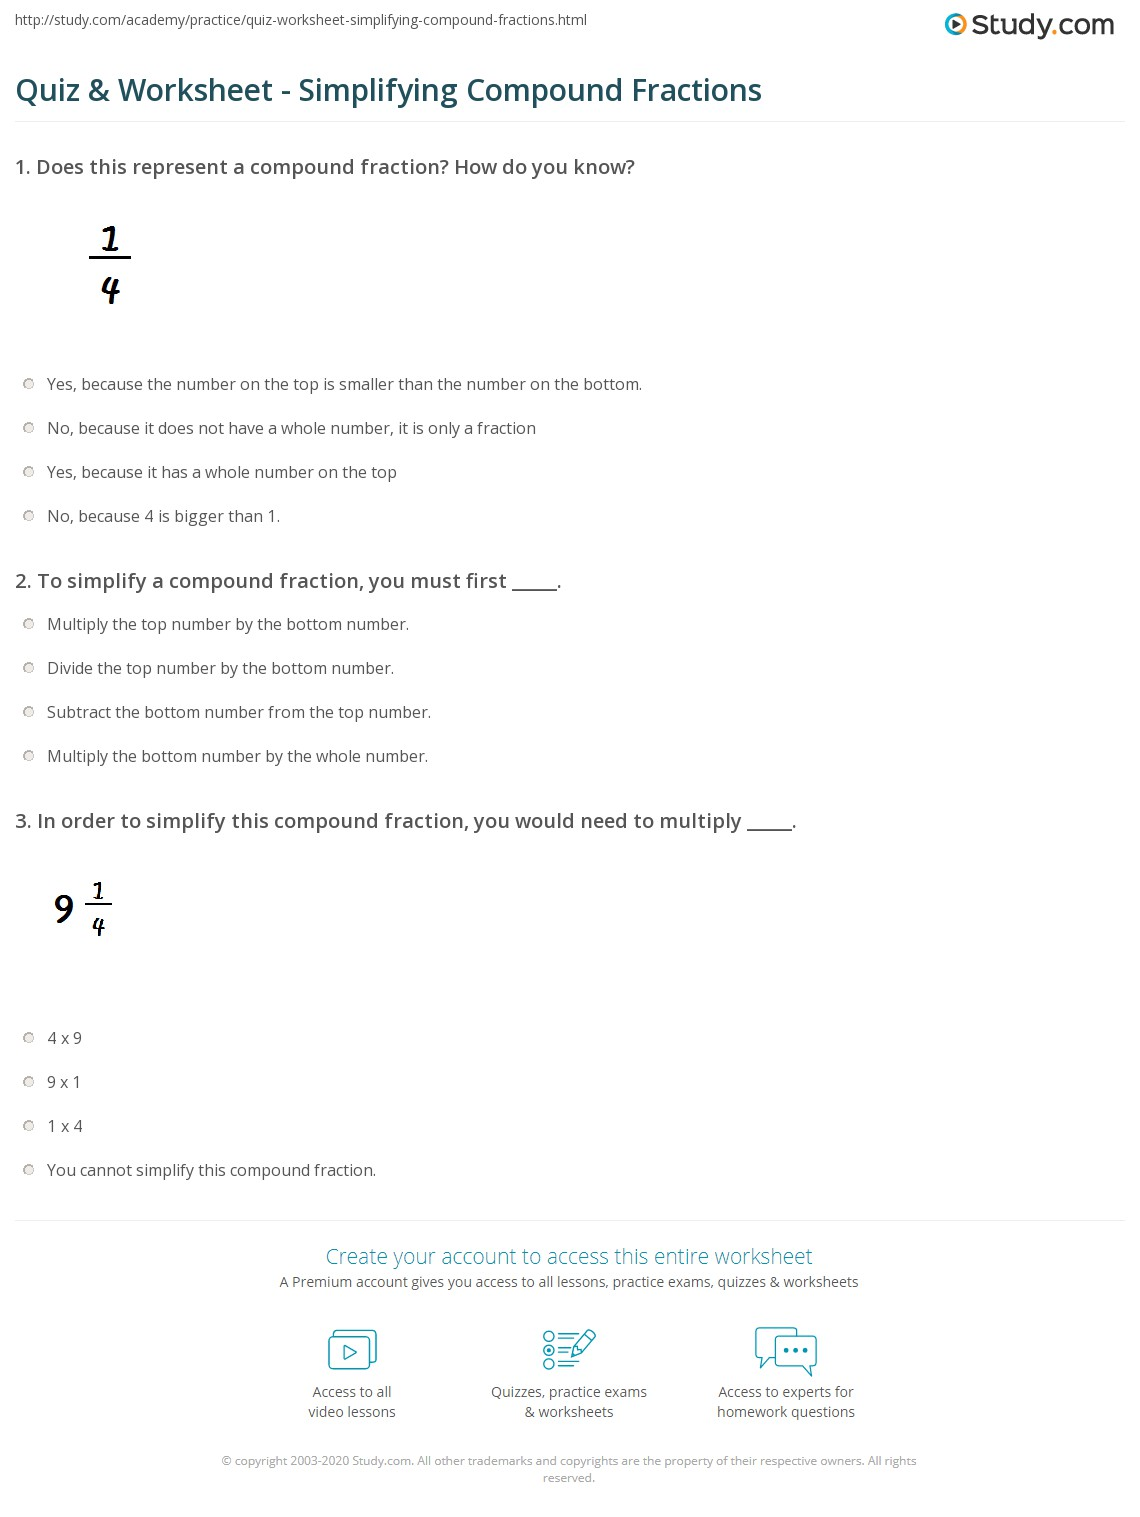 Quiz Amp Worksheet Simplifying Compound Fractions Study Com